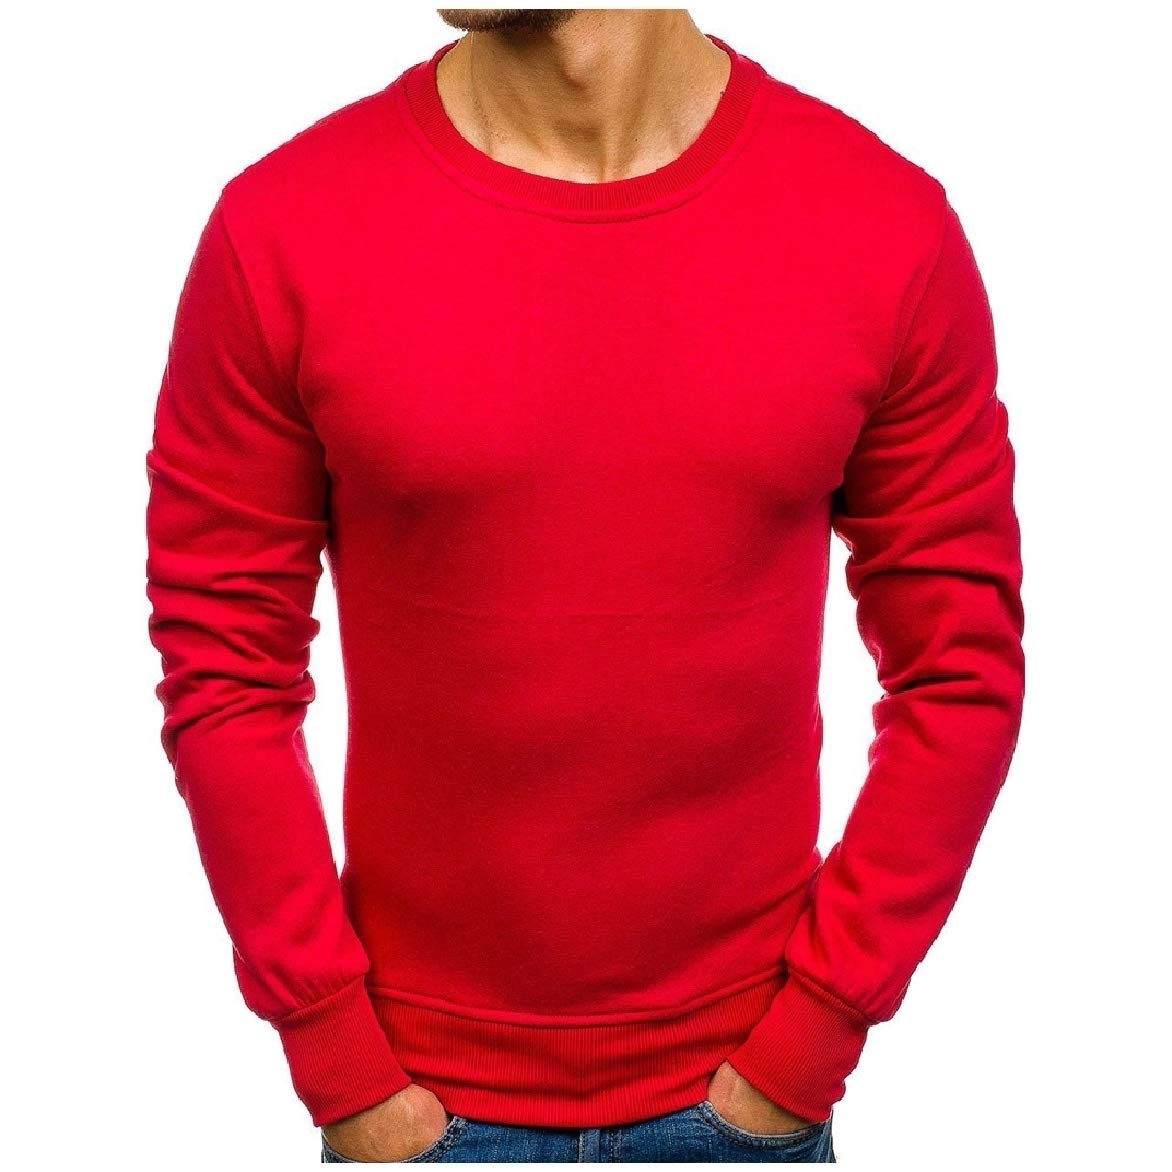 Abetteric Mens Pullover Regular Plus Size Solid Color Hoodie Shirt Top